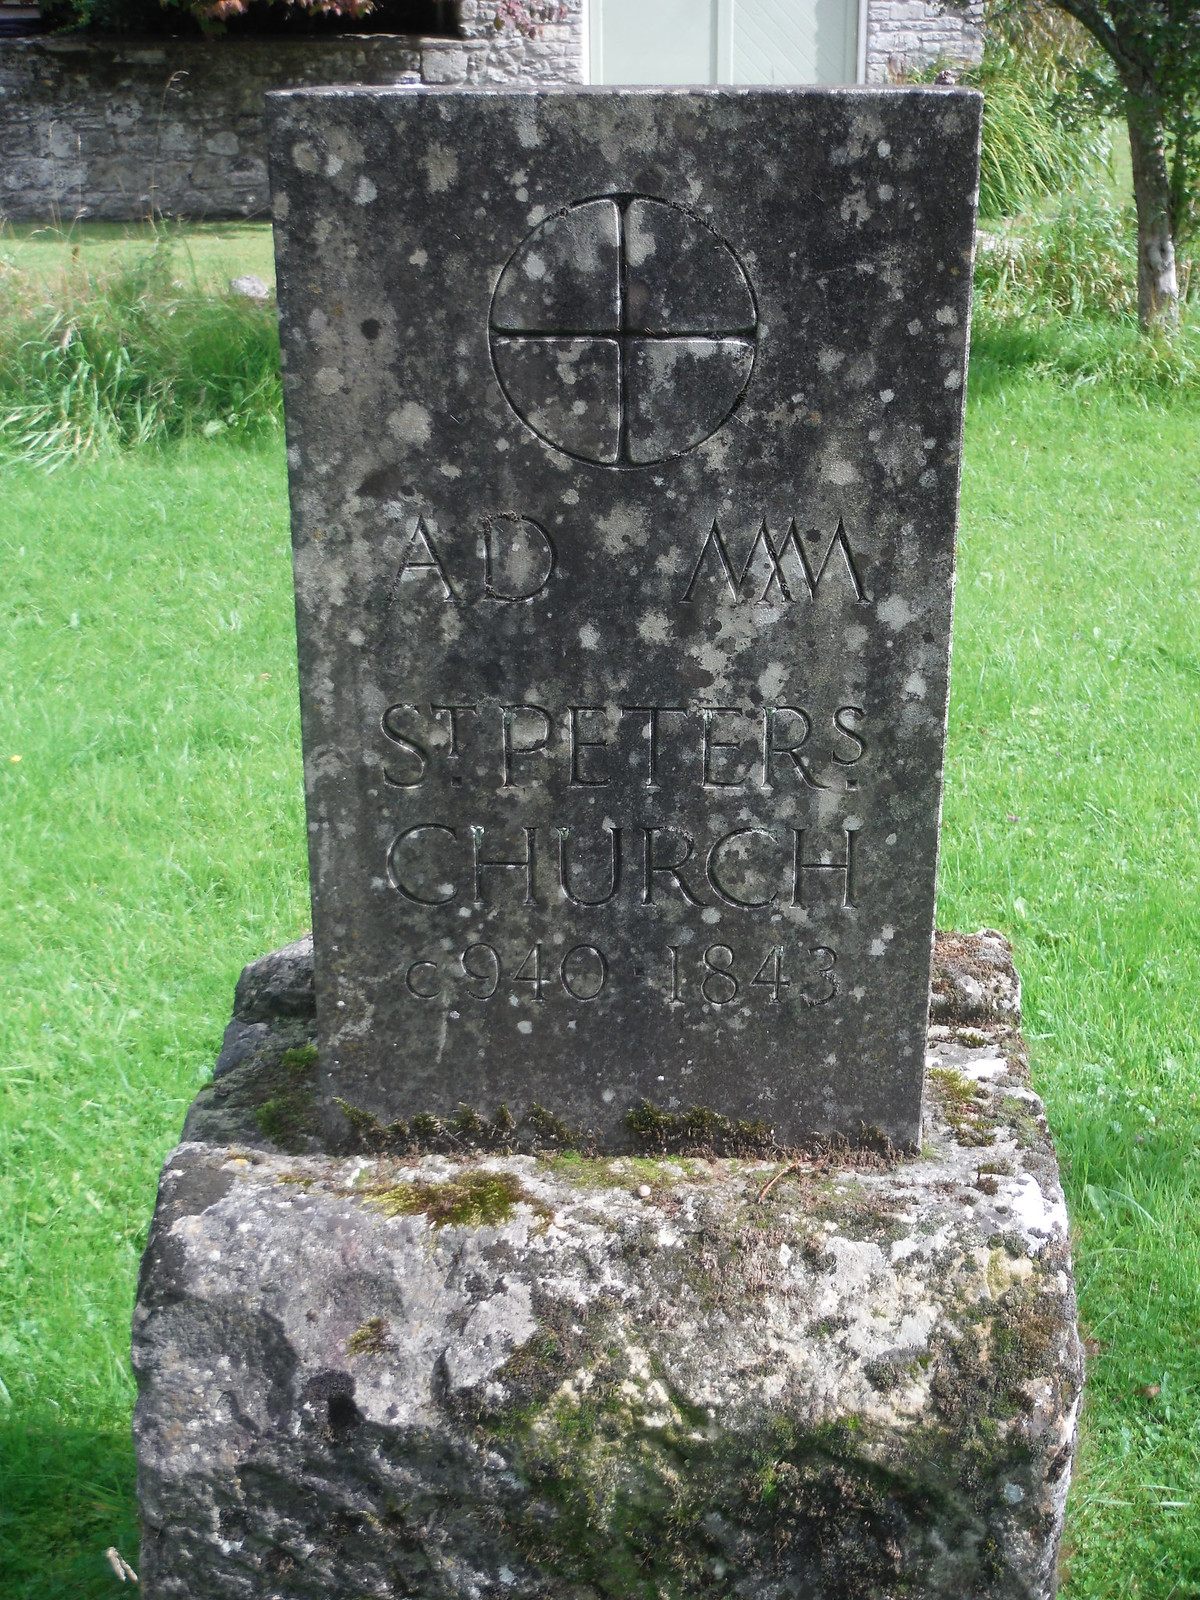 Memorial Stone for St. Peter's Church, Swallowcliffe SWC Walk 250 Tisbury Circular via Alvediston